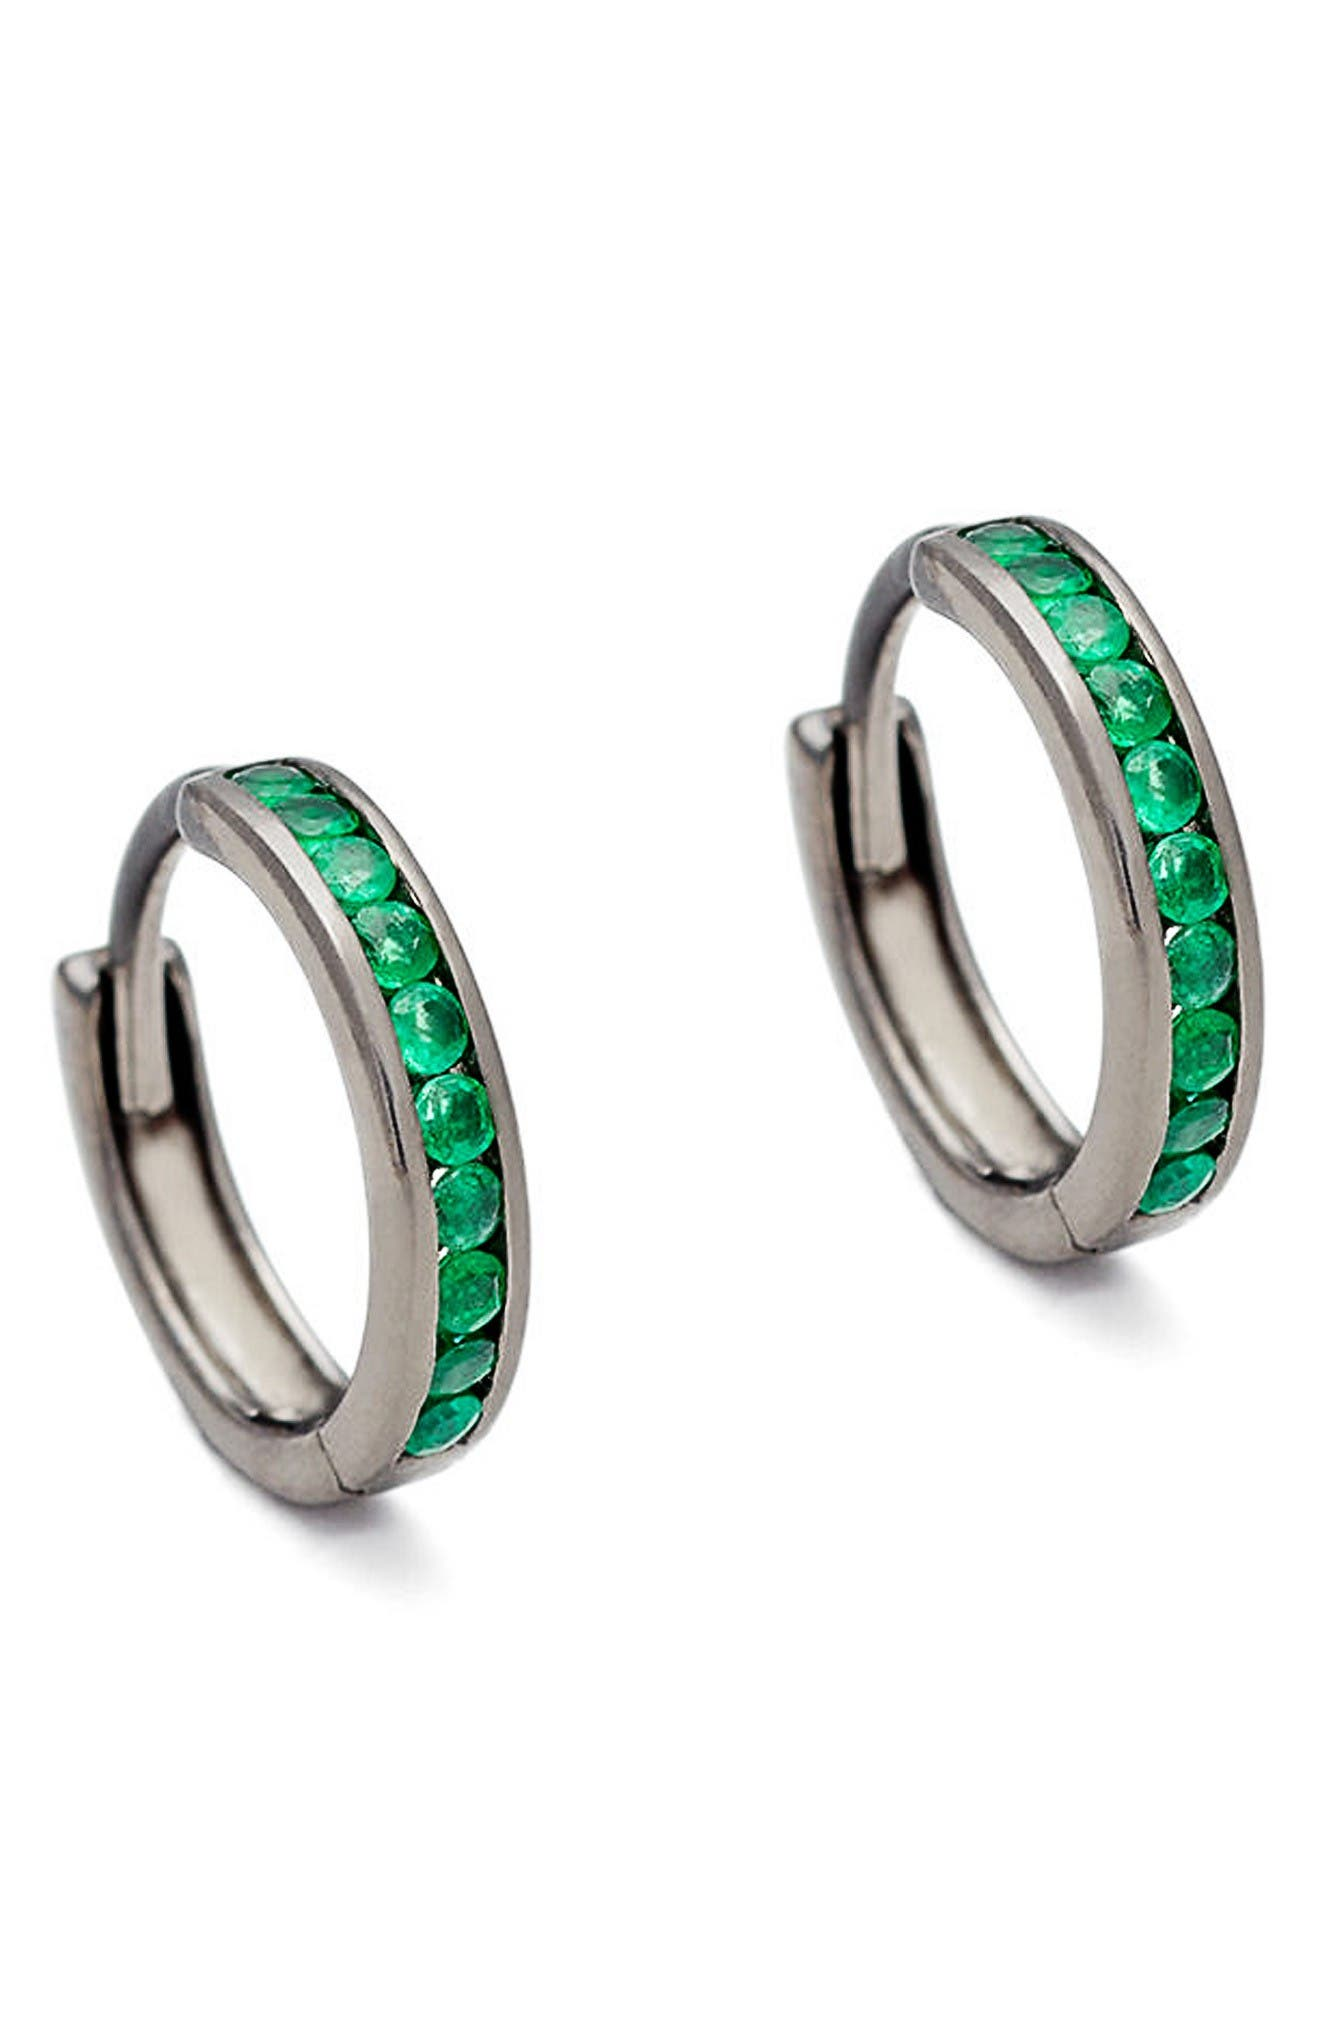 Alternate Image 1 Selected - Anna Sheffield Licol Emerald Hoop Earrings (Nordstrom Exclusive)